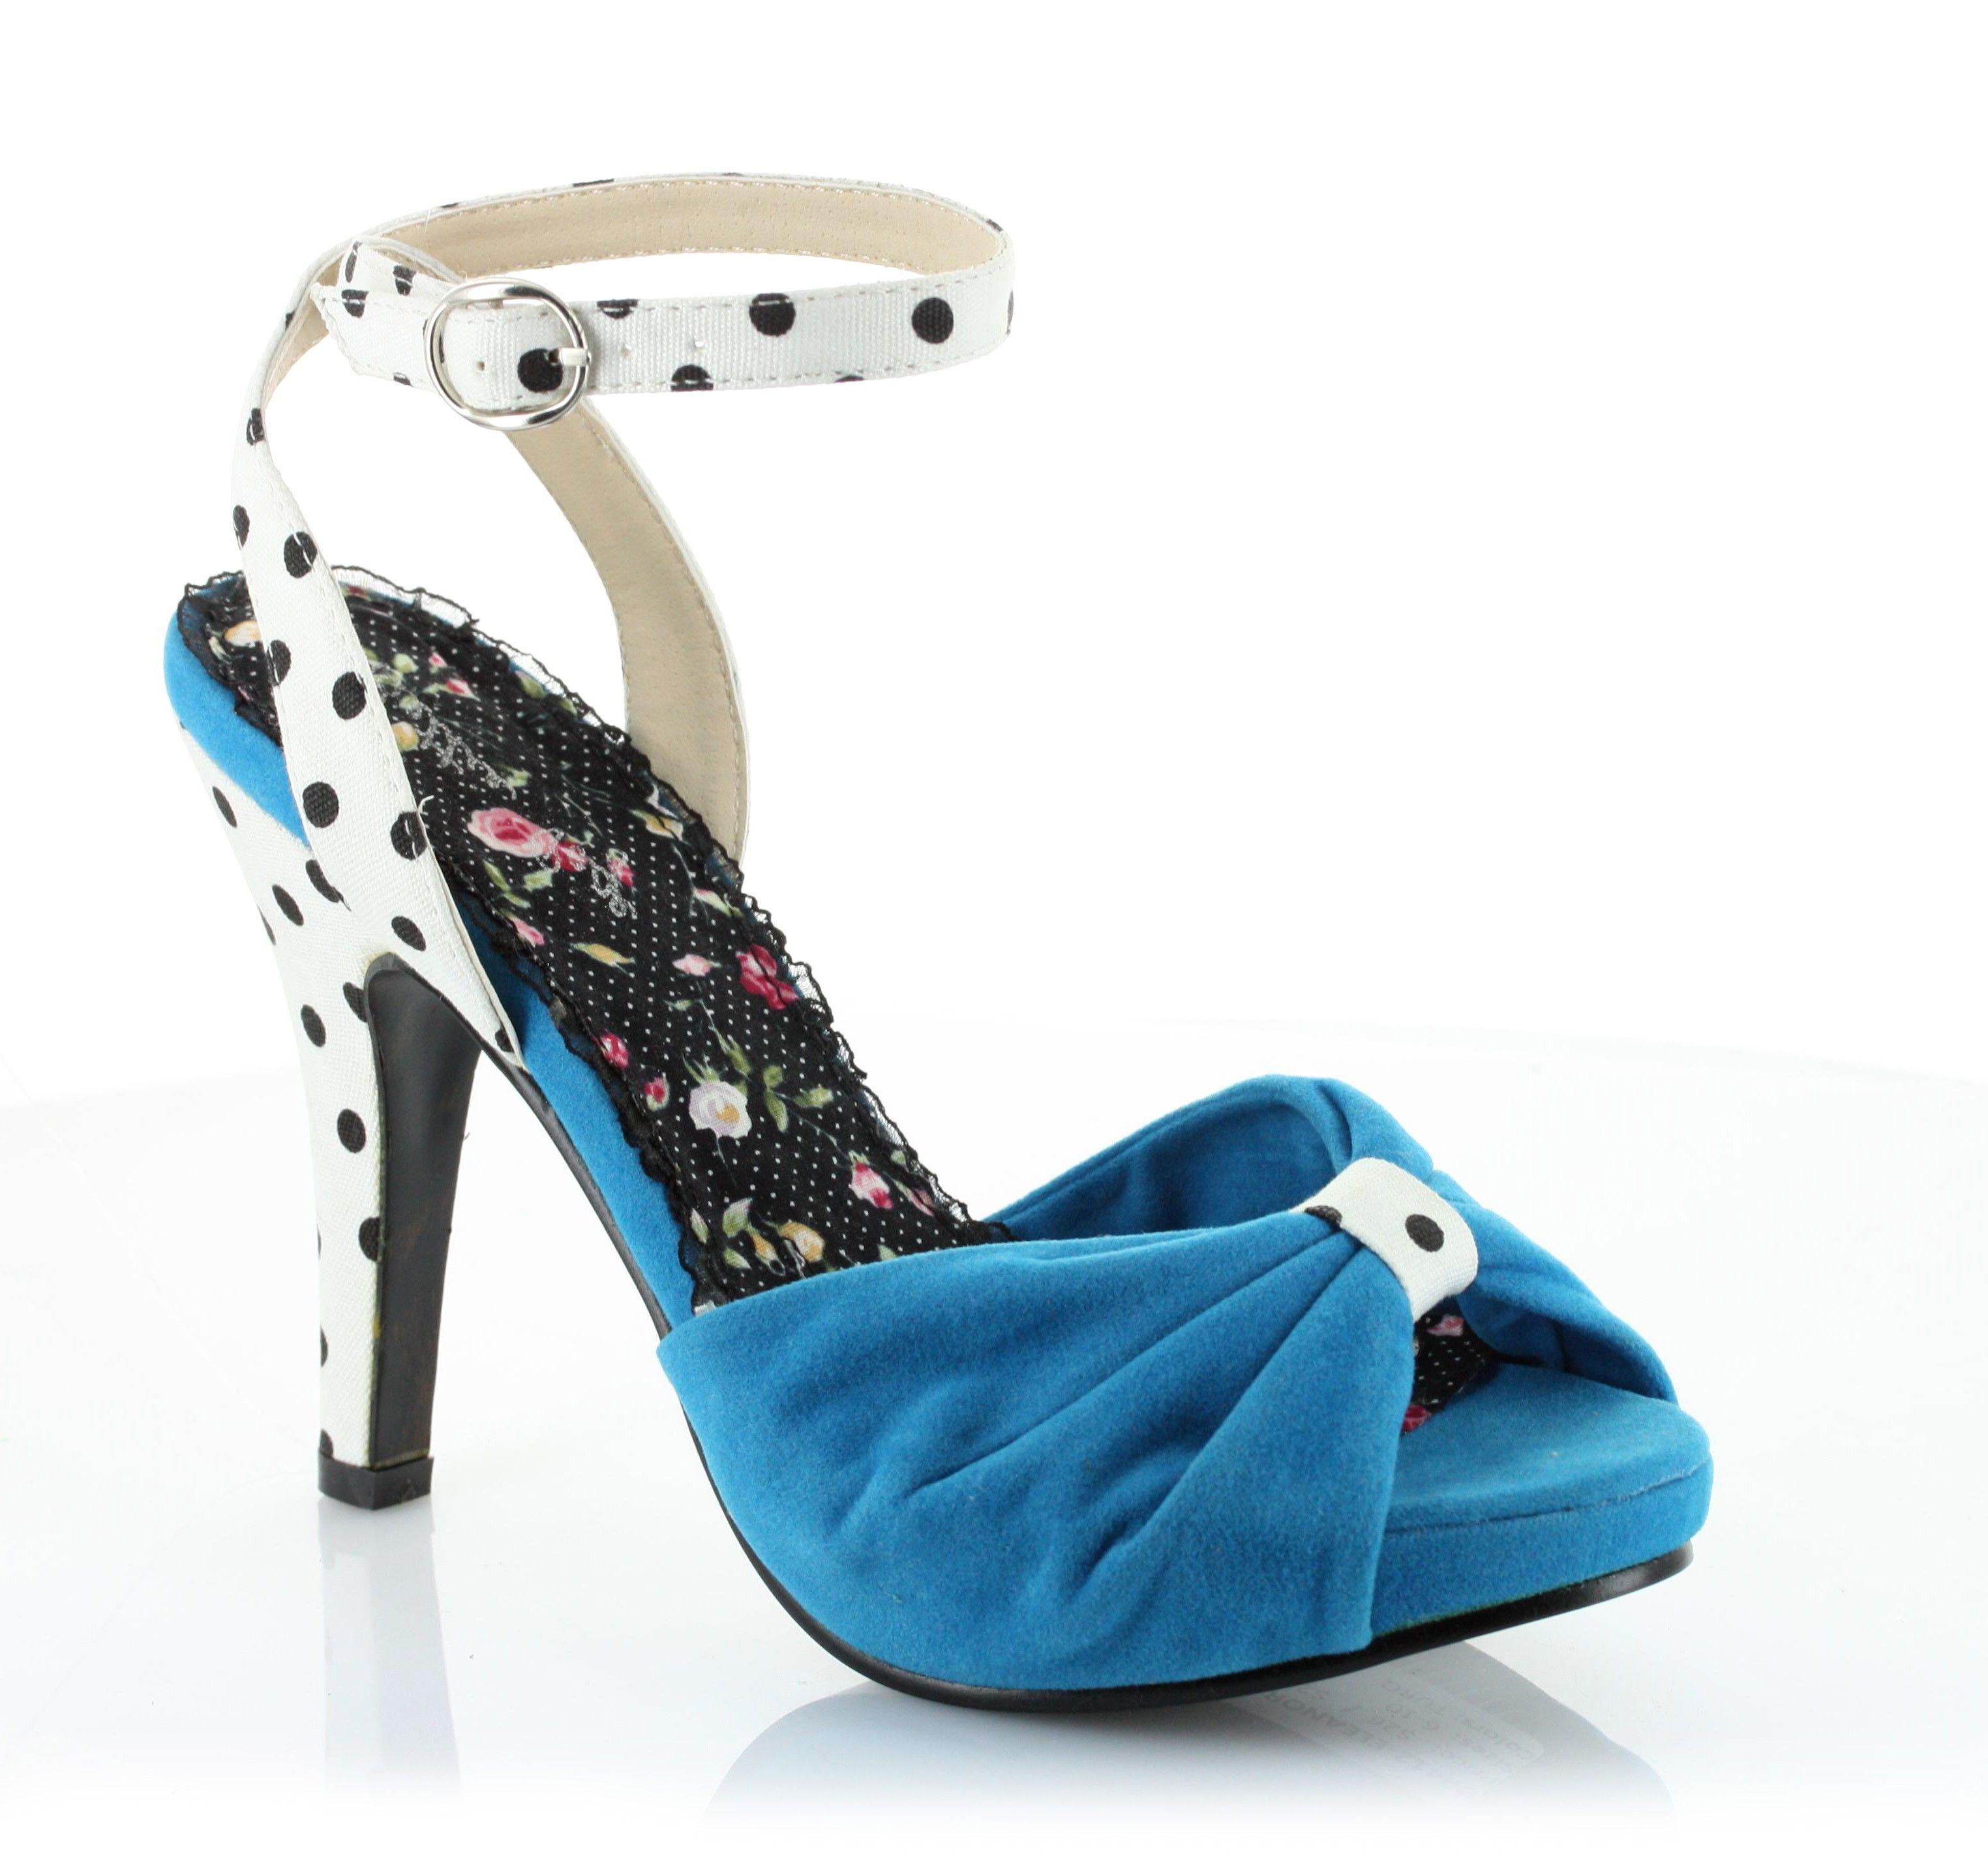 Eleanor+is+only+for+the+bold!+These+stand-out+peep+toe+pumps+sport+a+pop+of+color+and+a+bold+polka-dot+accent+heel.++These+cushioned+4+inch+heels+were+made+for+the+dance+floor+and+complement+your+favorite+pinup+ensembles.+Made+by+Bettie+Page+Shoes. $59.00